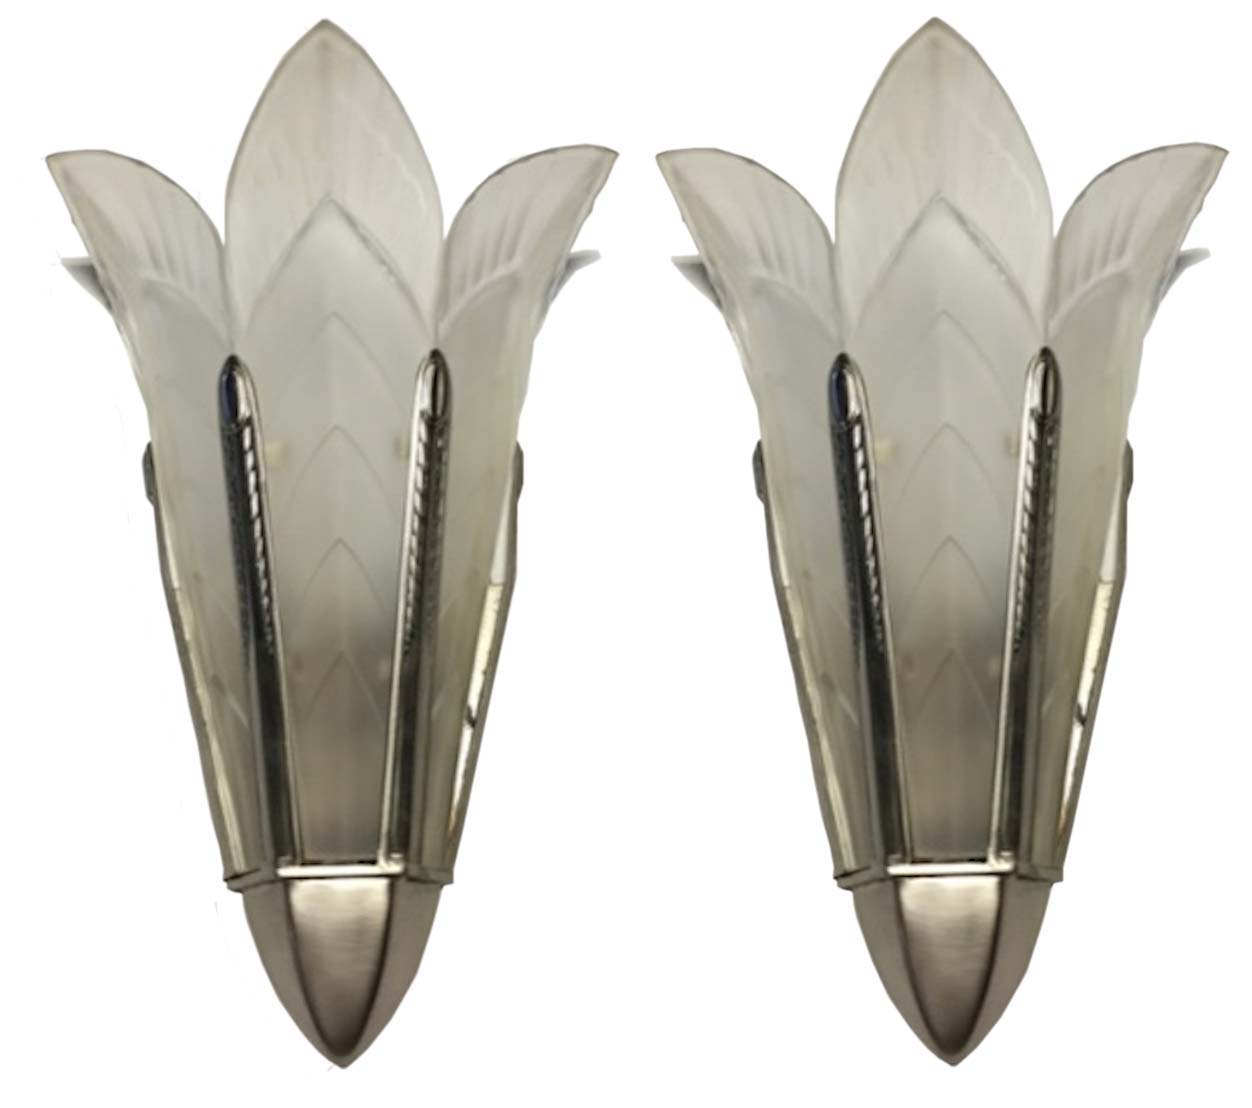 A Pair Of Signed Sabino French Art Deco Wall Sconces